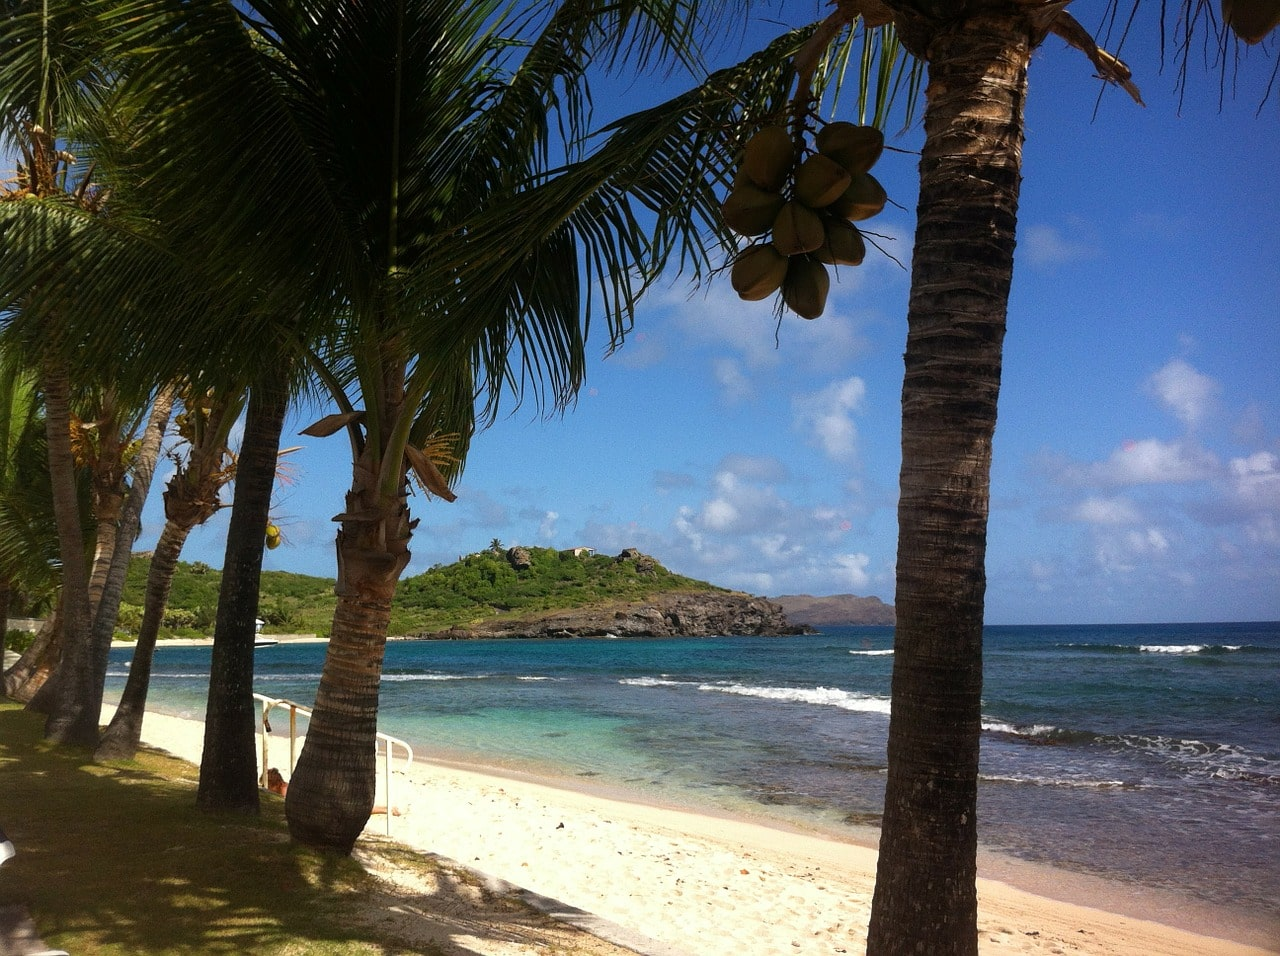 Shell Beach on St. Barts